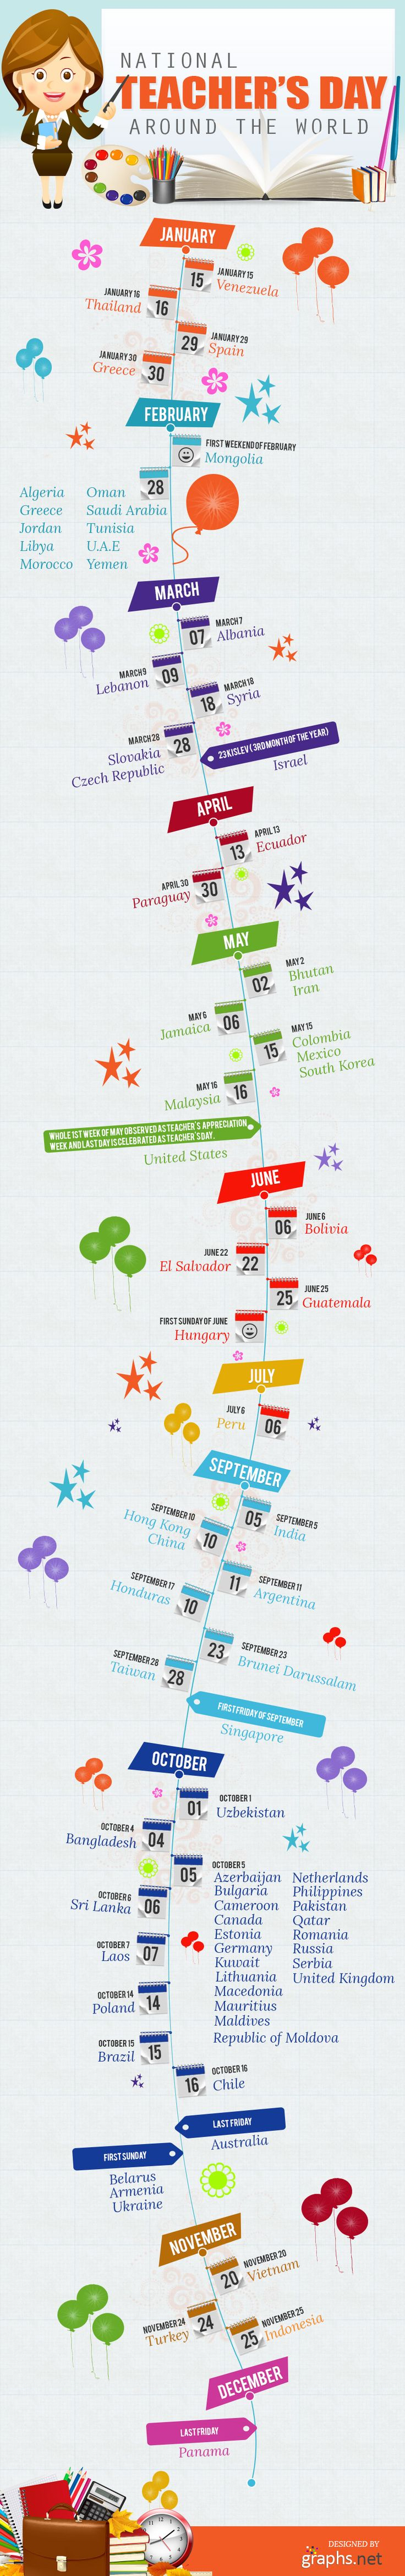 Teacher's Appreciation Day Around The World Infographic - http://elearninginfographics.com/teachers-appreciation-day-around-world-infographic/